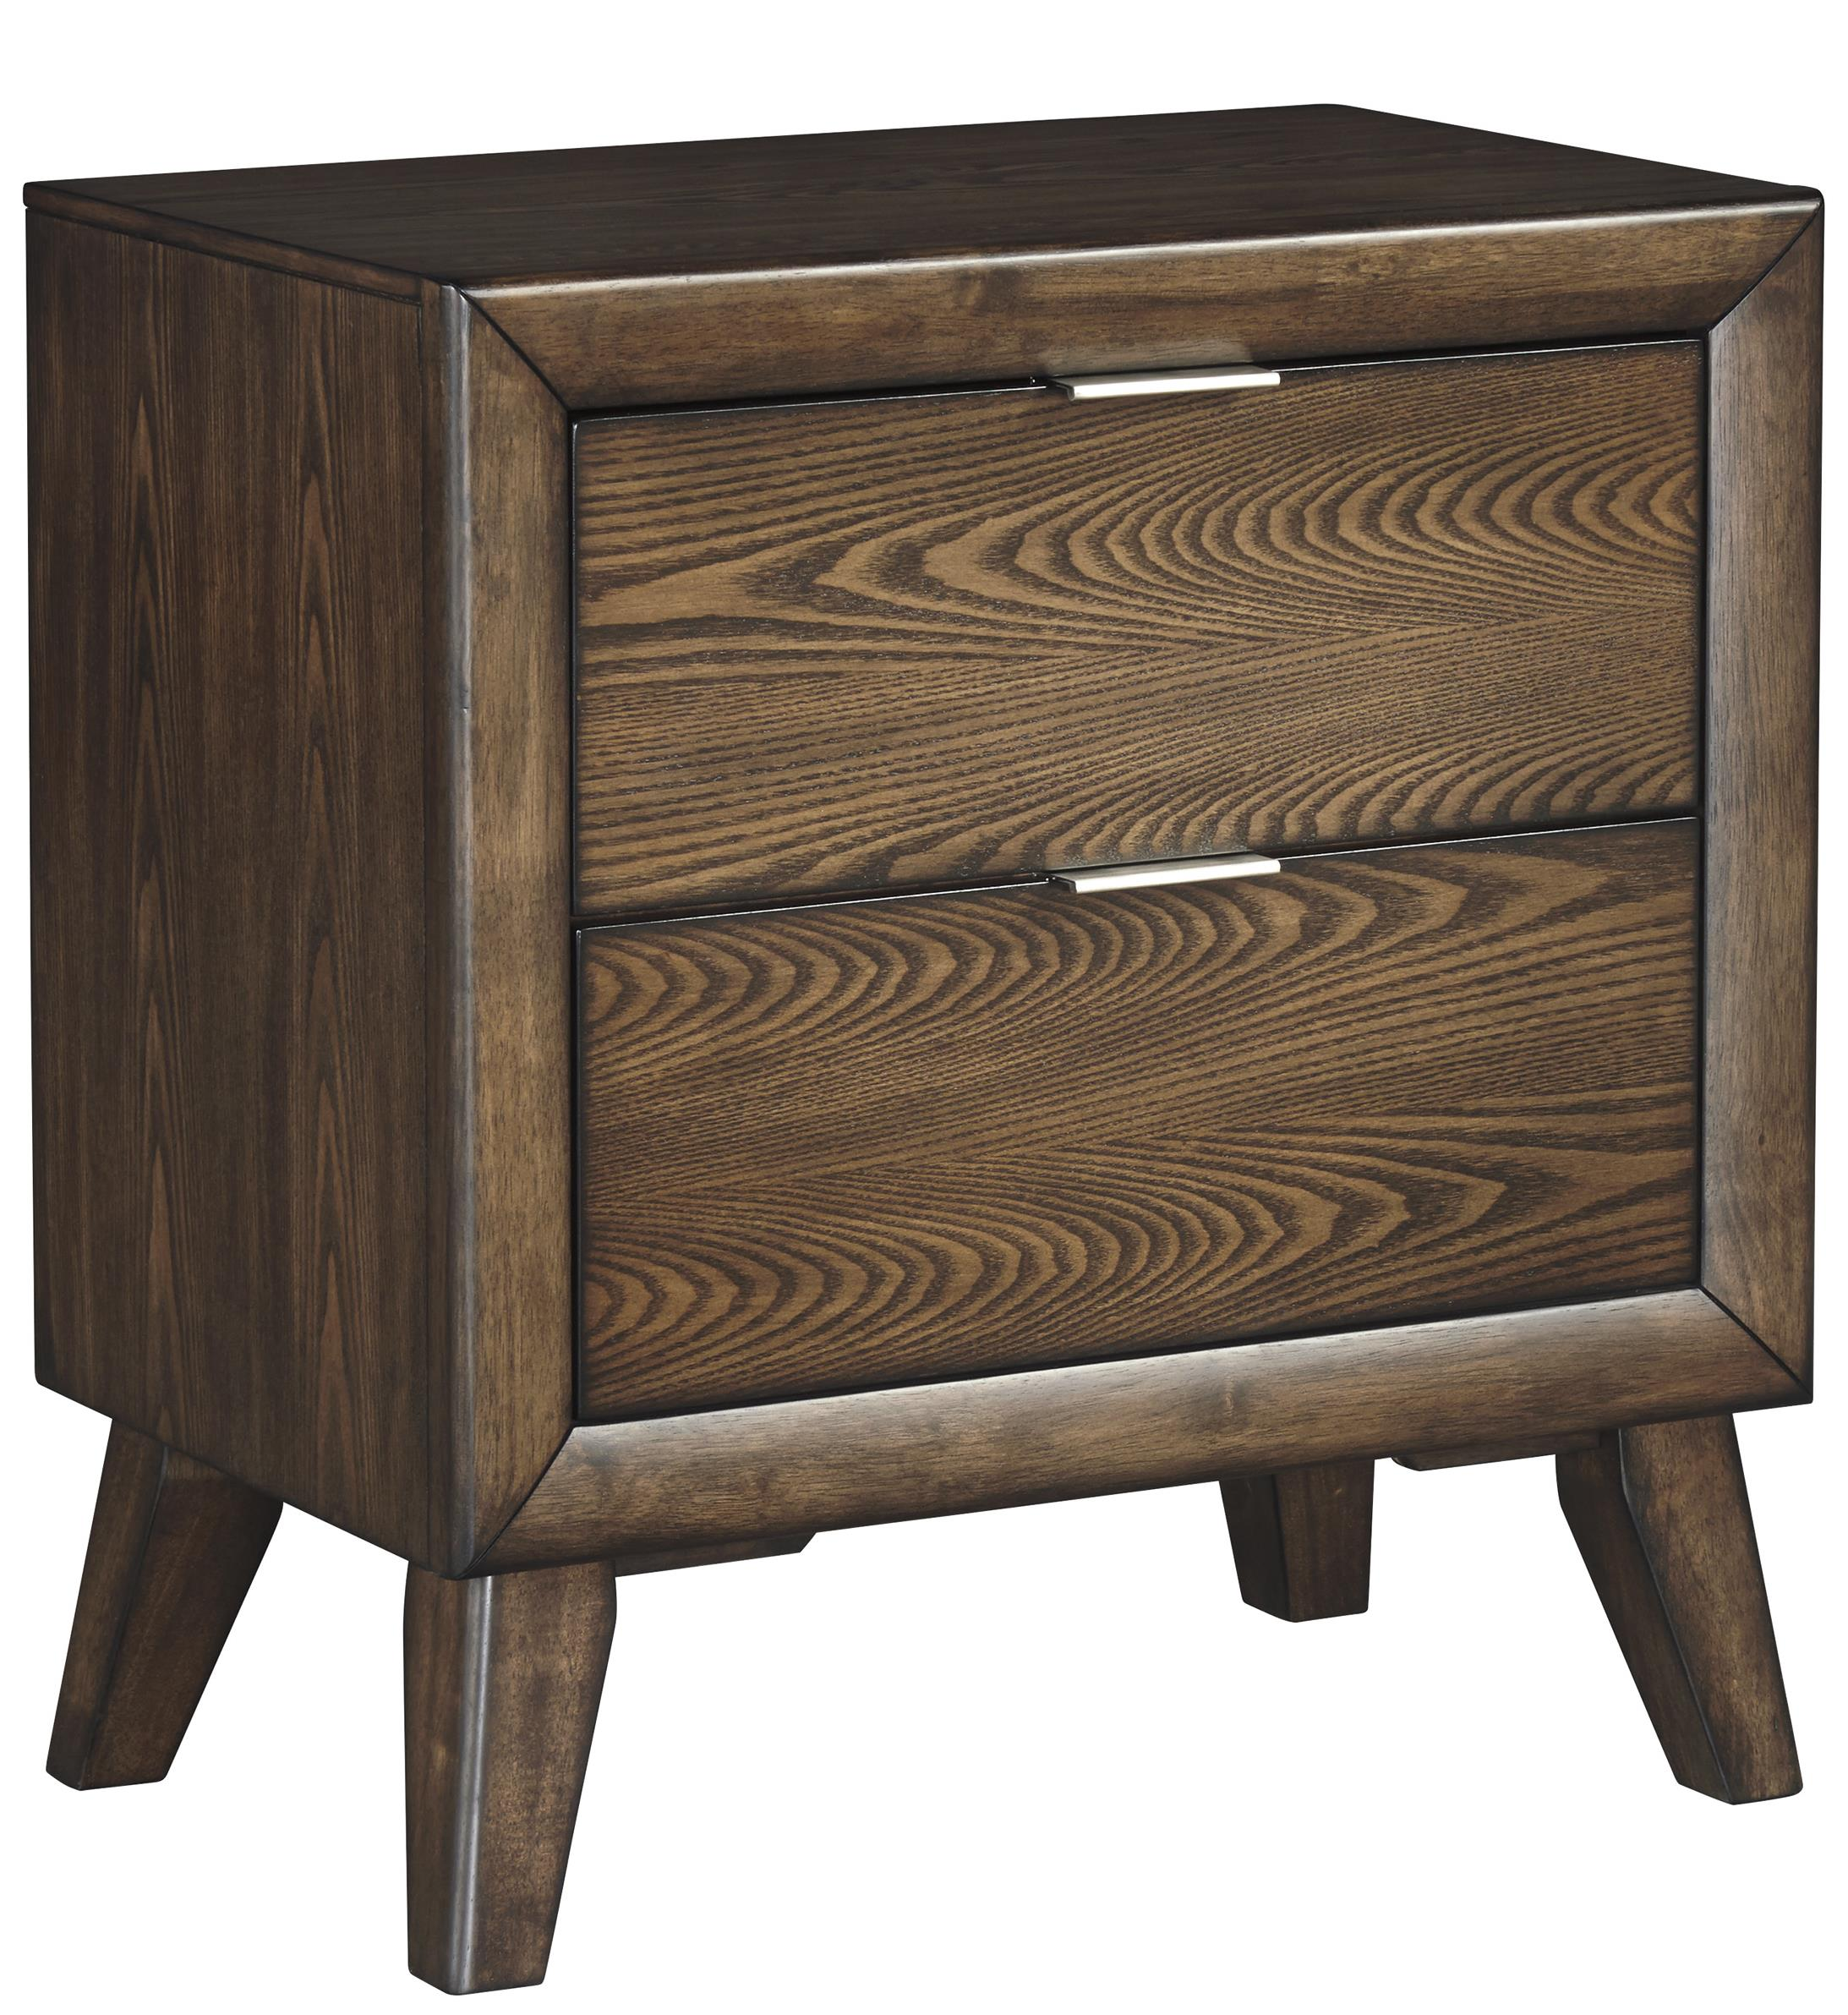 Signature Design by Ashley Debeaux Two Drawer Night Stand - Item Number: B535-92